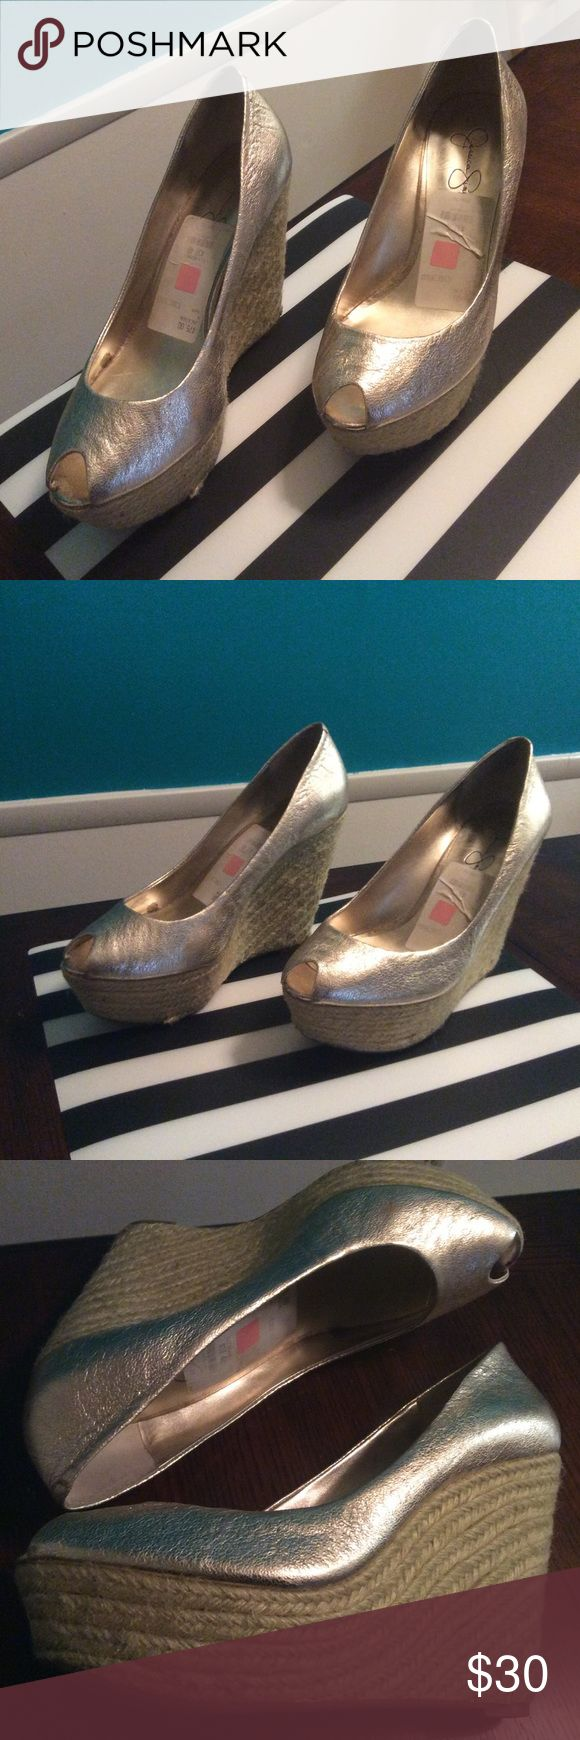 SHOE SALE🔥Jessica Simpson Gold wedge shoes Brushed metallic gold espadrille wedges by Jessica Simpson Jessica Simpson Shoes Wedges